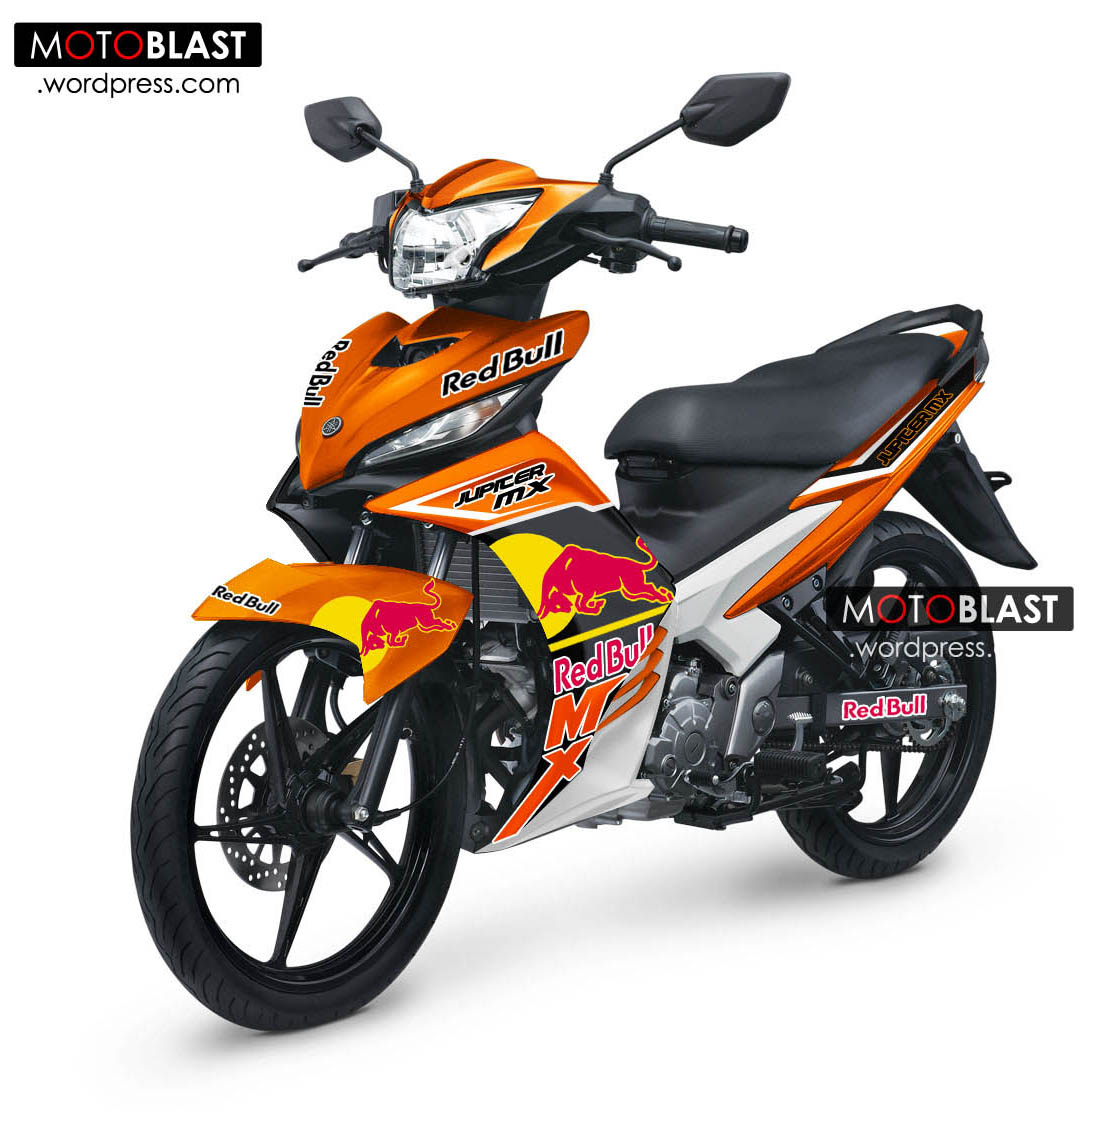 Modif striping new jupiter mx 2013 ala ktm redbull